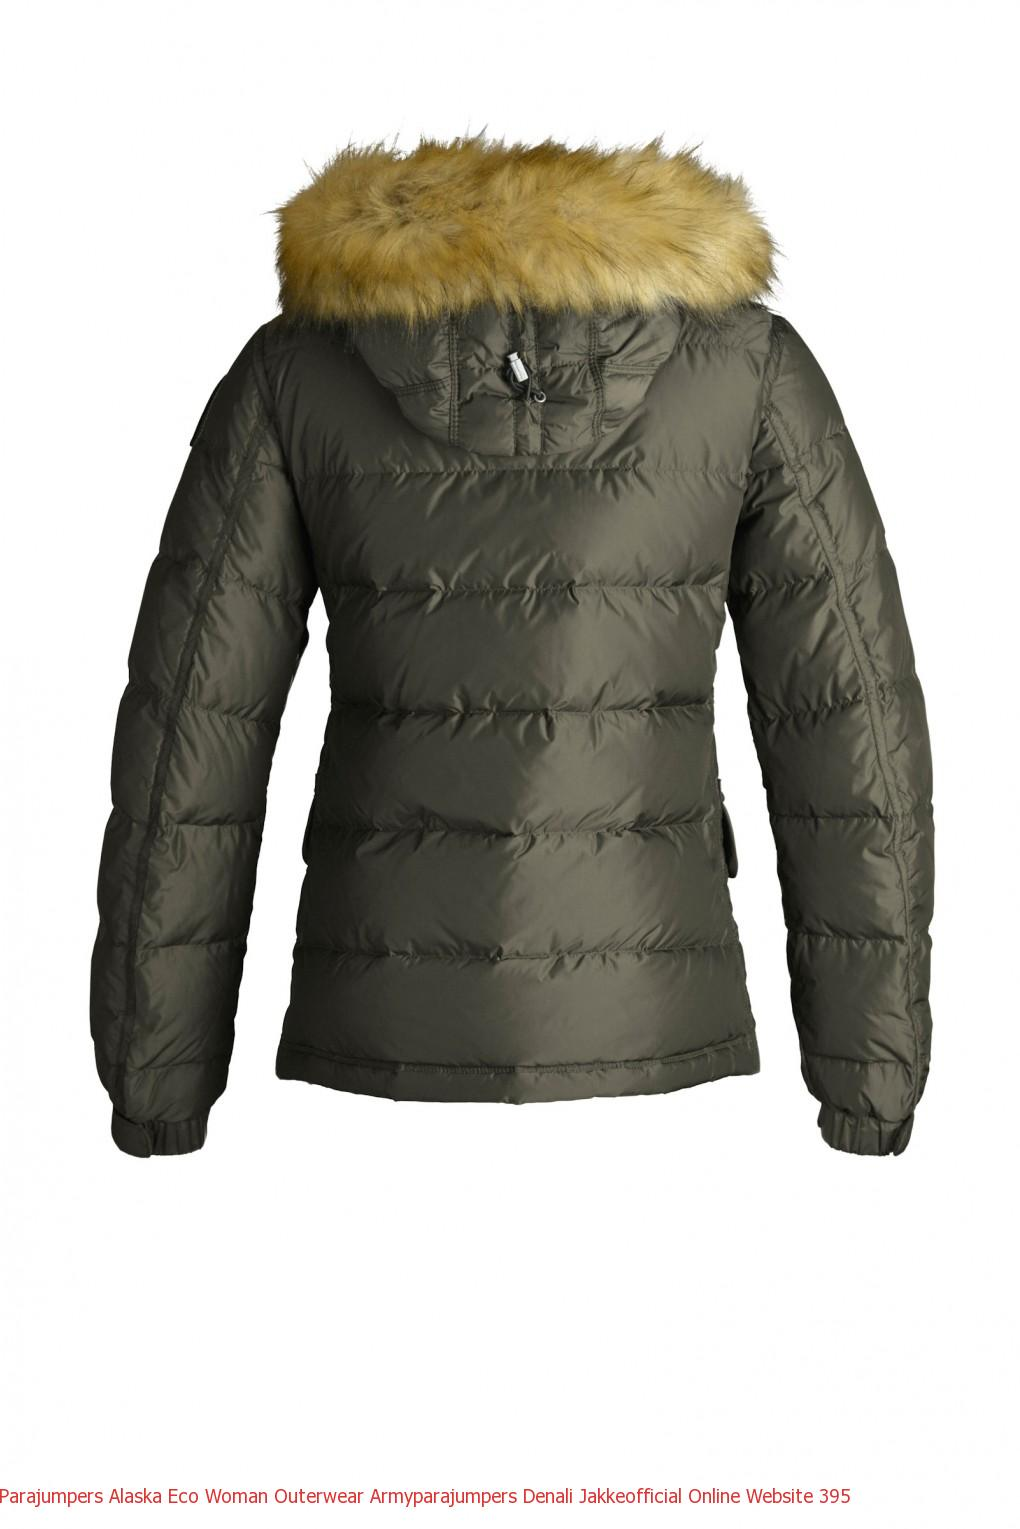 Parajumpers Alaska Eco Woman Outerwear Armyparajumpers Denali Jakkeofficial Online Website 396